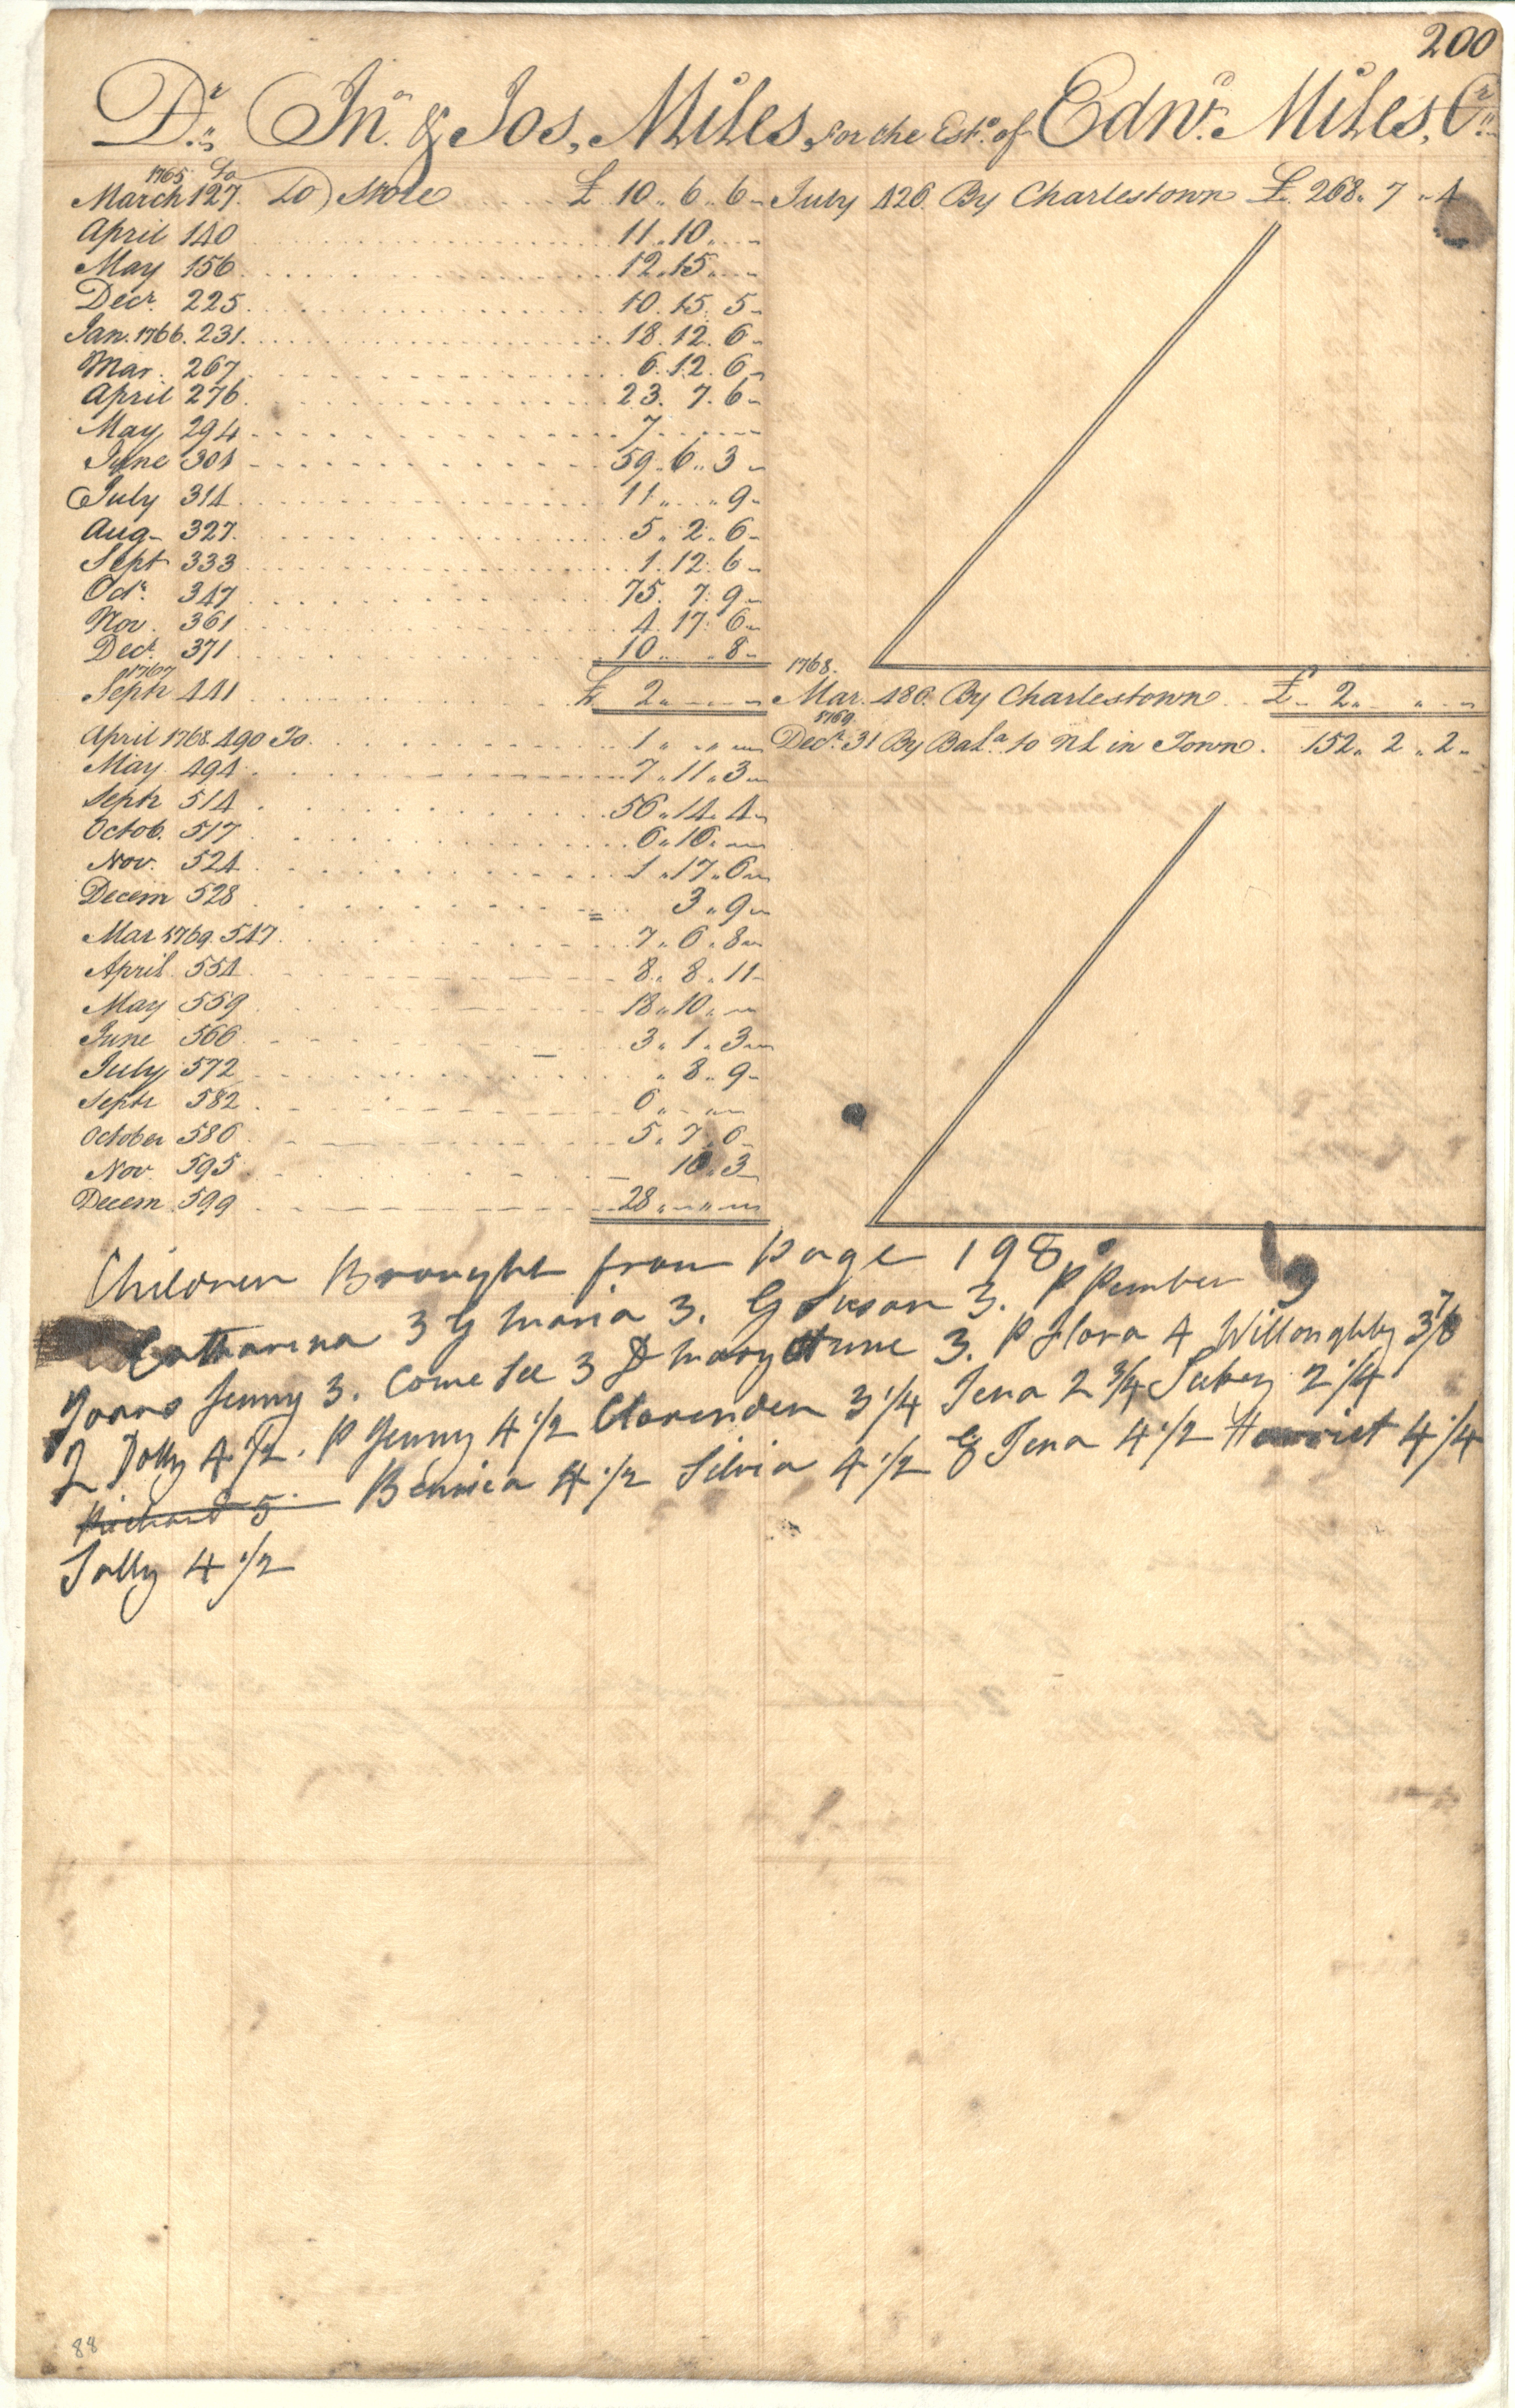 Plowden Weston's Business Ledger, page 200